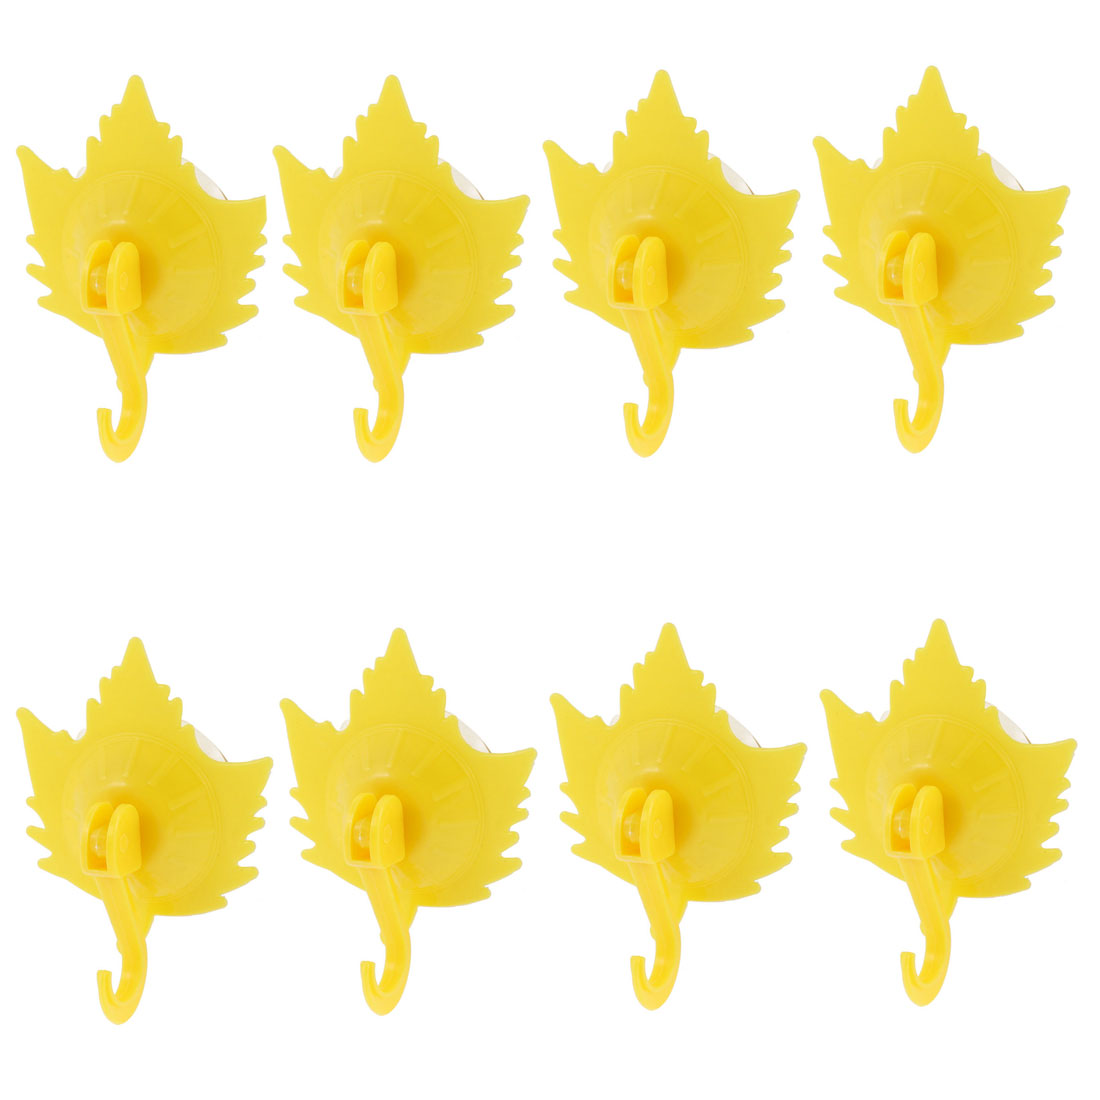 Home Clothes Maple Leaf Shaped Suction Cup Plastic Hooks Wall Hangers Yellow 8pcs